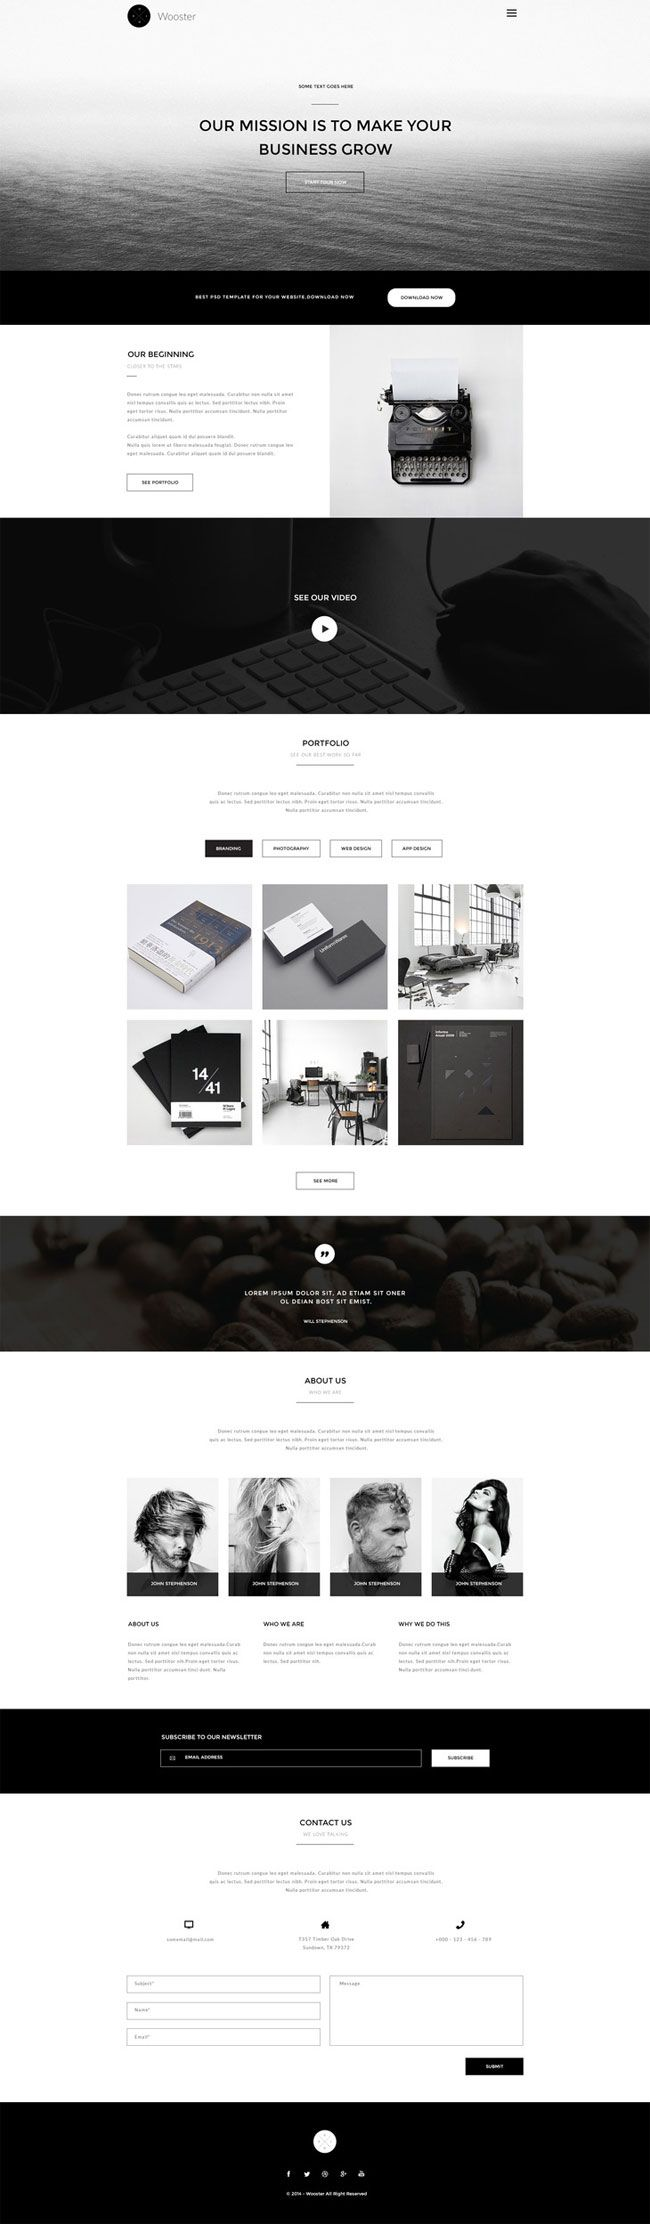 129 best E-Commerce images on Pinterest | Template, E commerce and ...